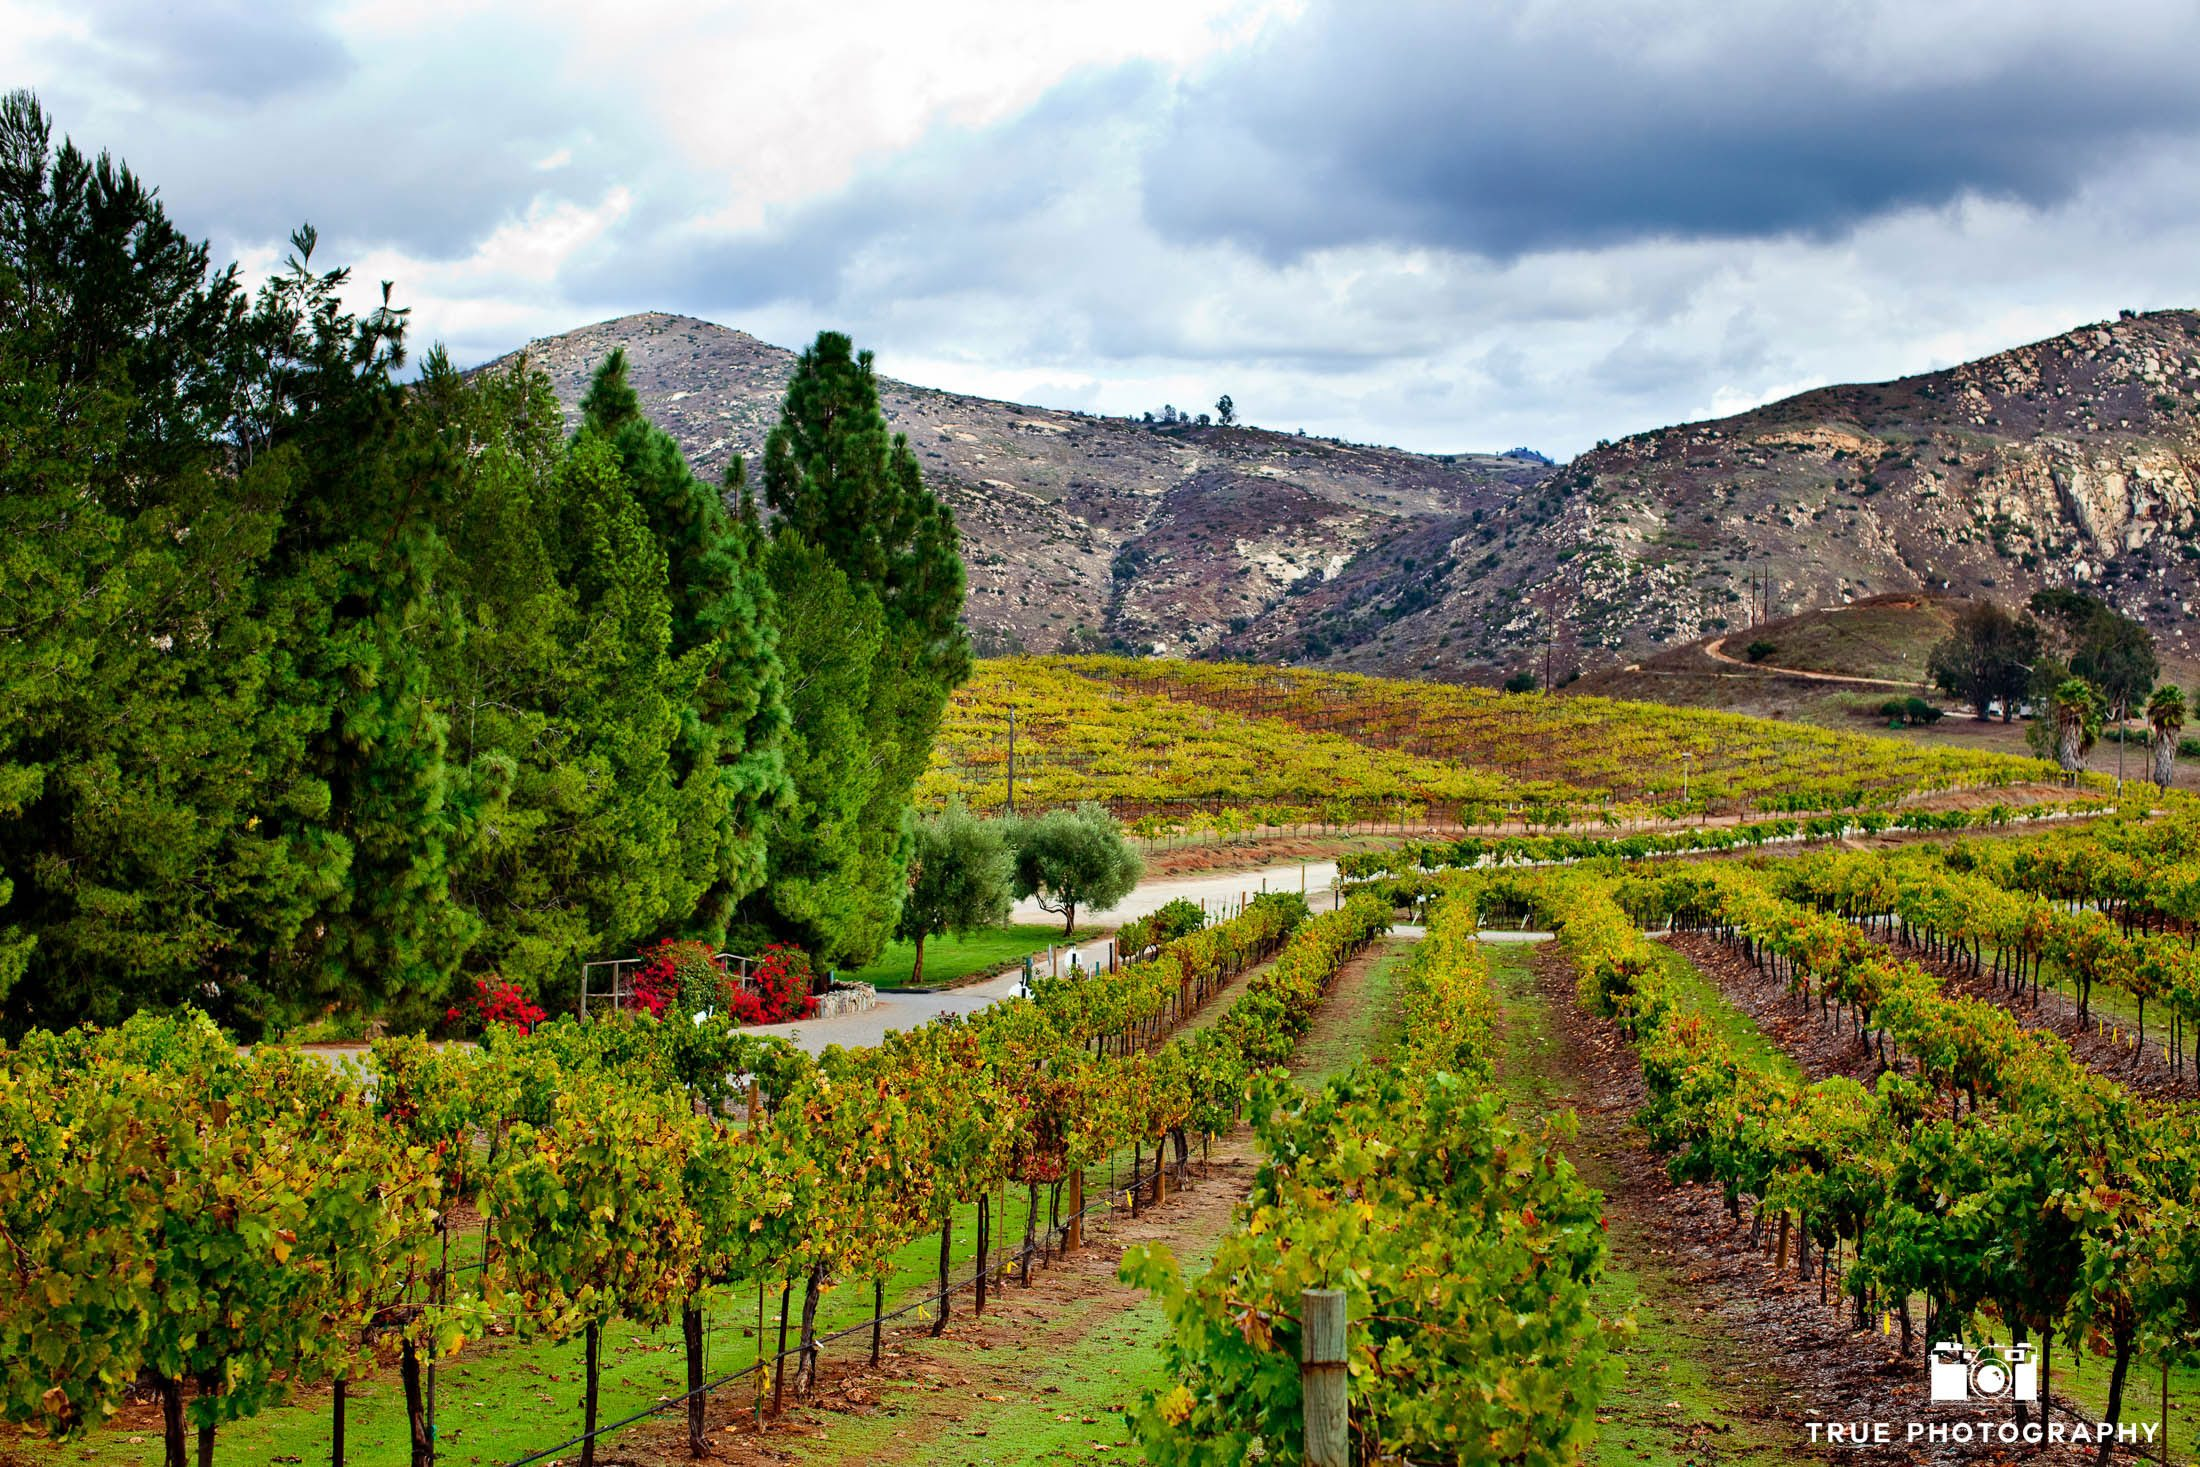 Gorgeous view of mountains and vineyard at Orfila Winery